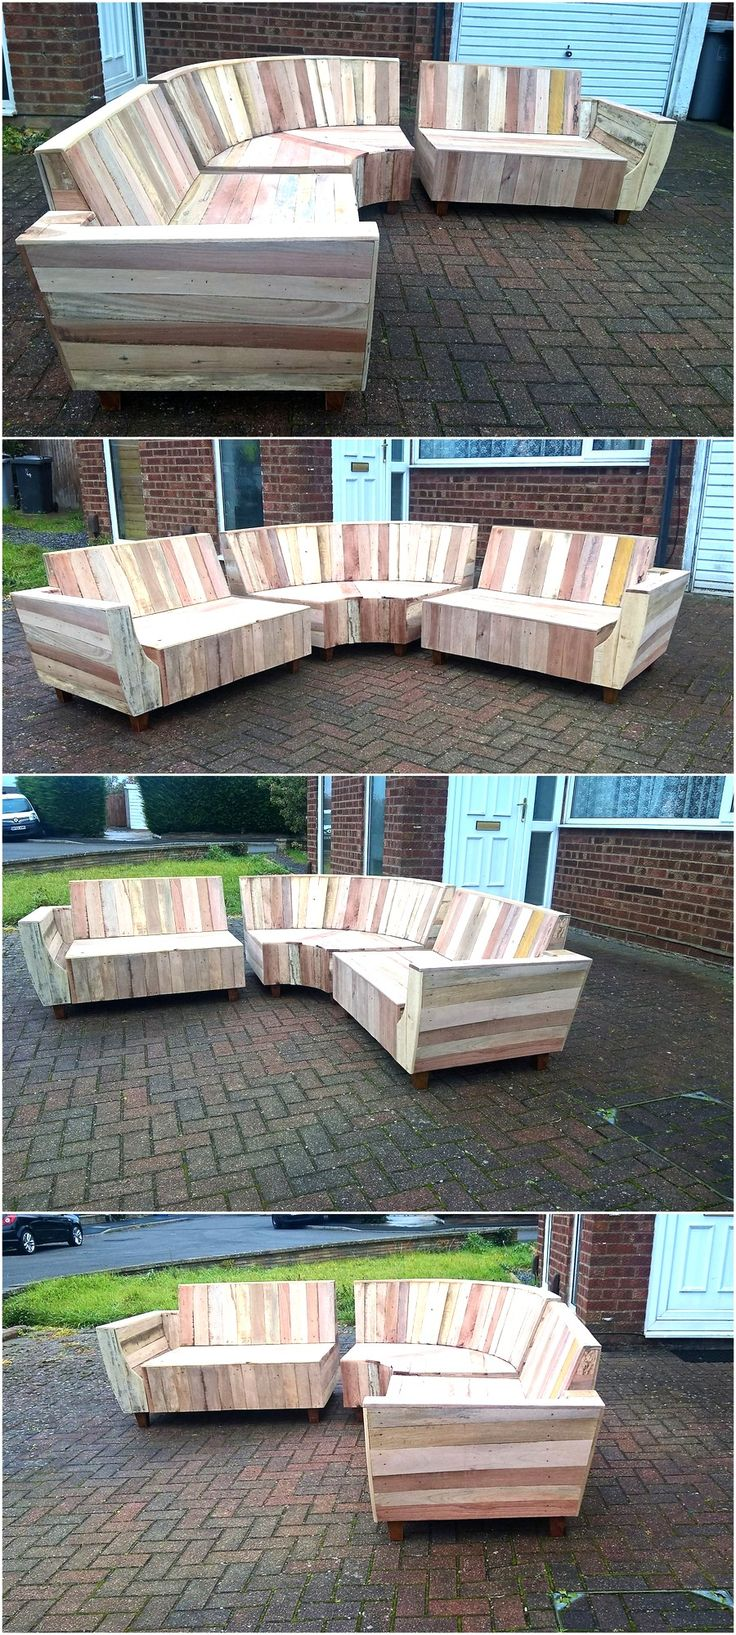 17 Best Ideas About Outdoor Couch On Pinterest Diy Garden Furniture Pallet Sofa And Outdoor Sofas